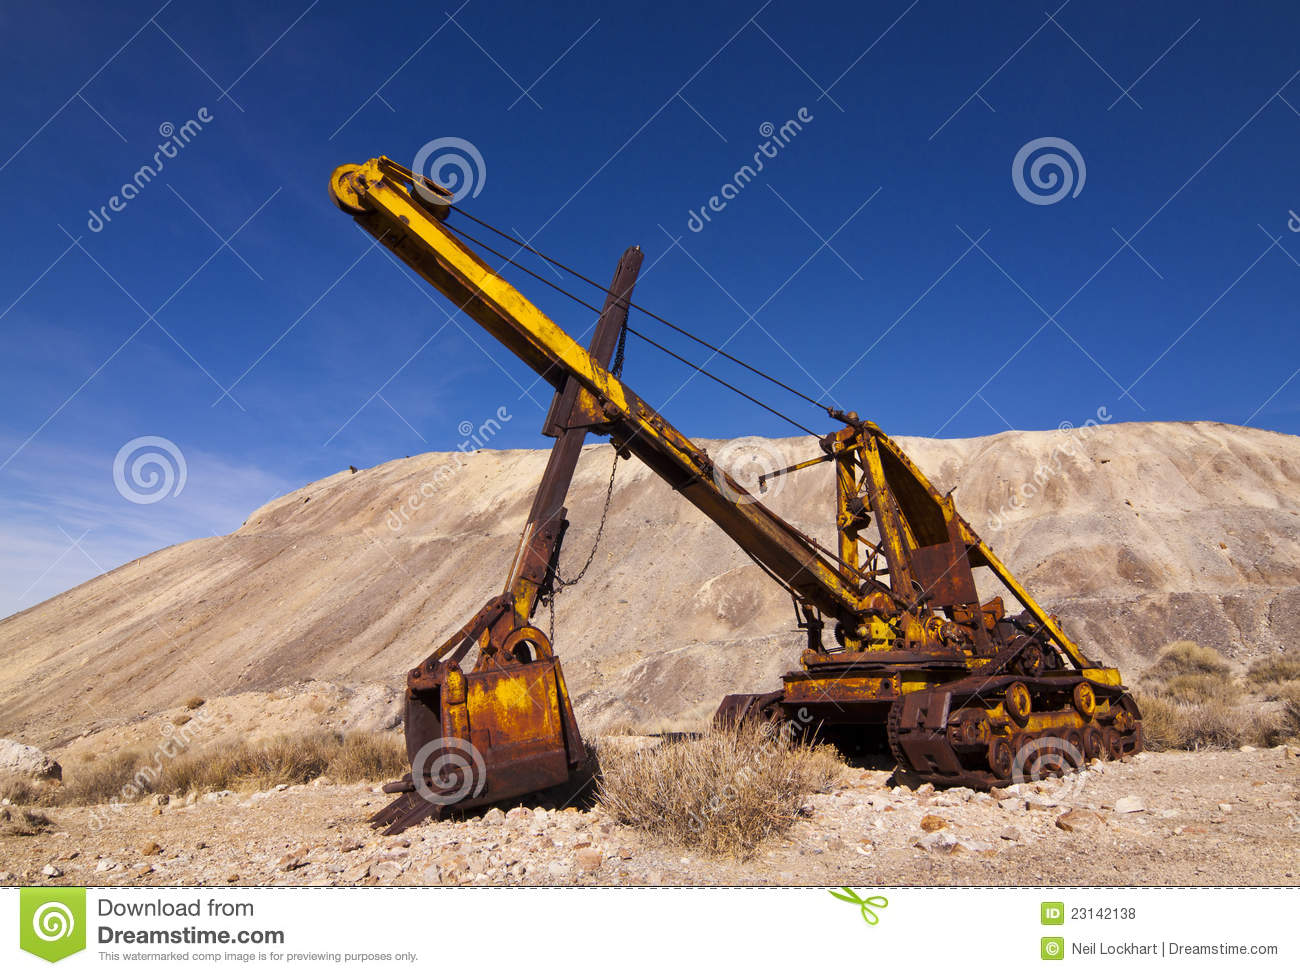 Grade 4 Lesson 3 How Old Are You Can moreover OldFashionedBourbonBarCustomWoodSign also 401278874086 besides 135903559 Off Set With Scarlett Leithold besides Royalty Free Stock Photos Old Mining Heavy Equipment Image23142138. on old grade cards